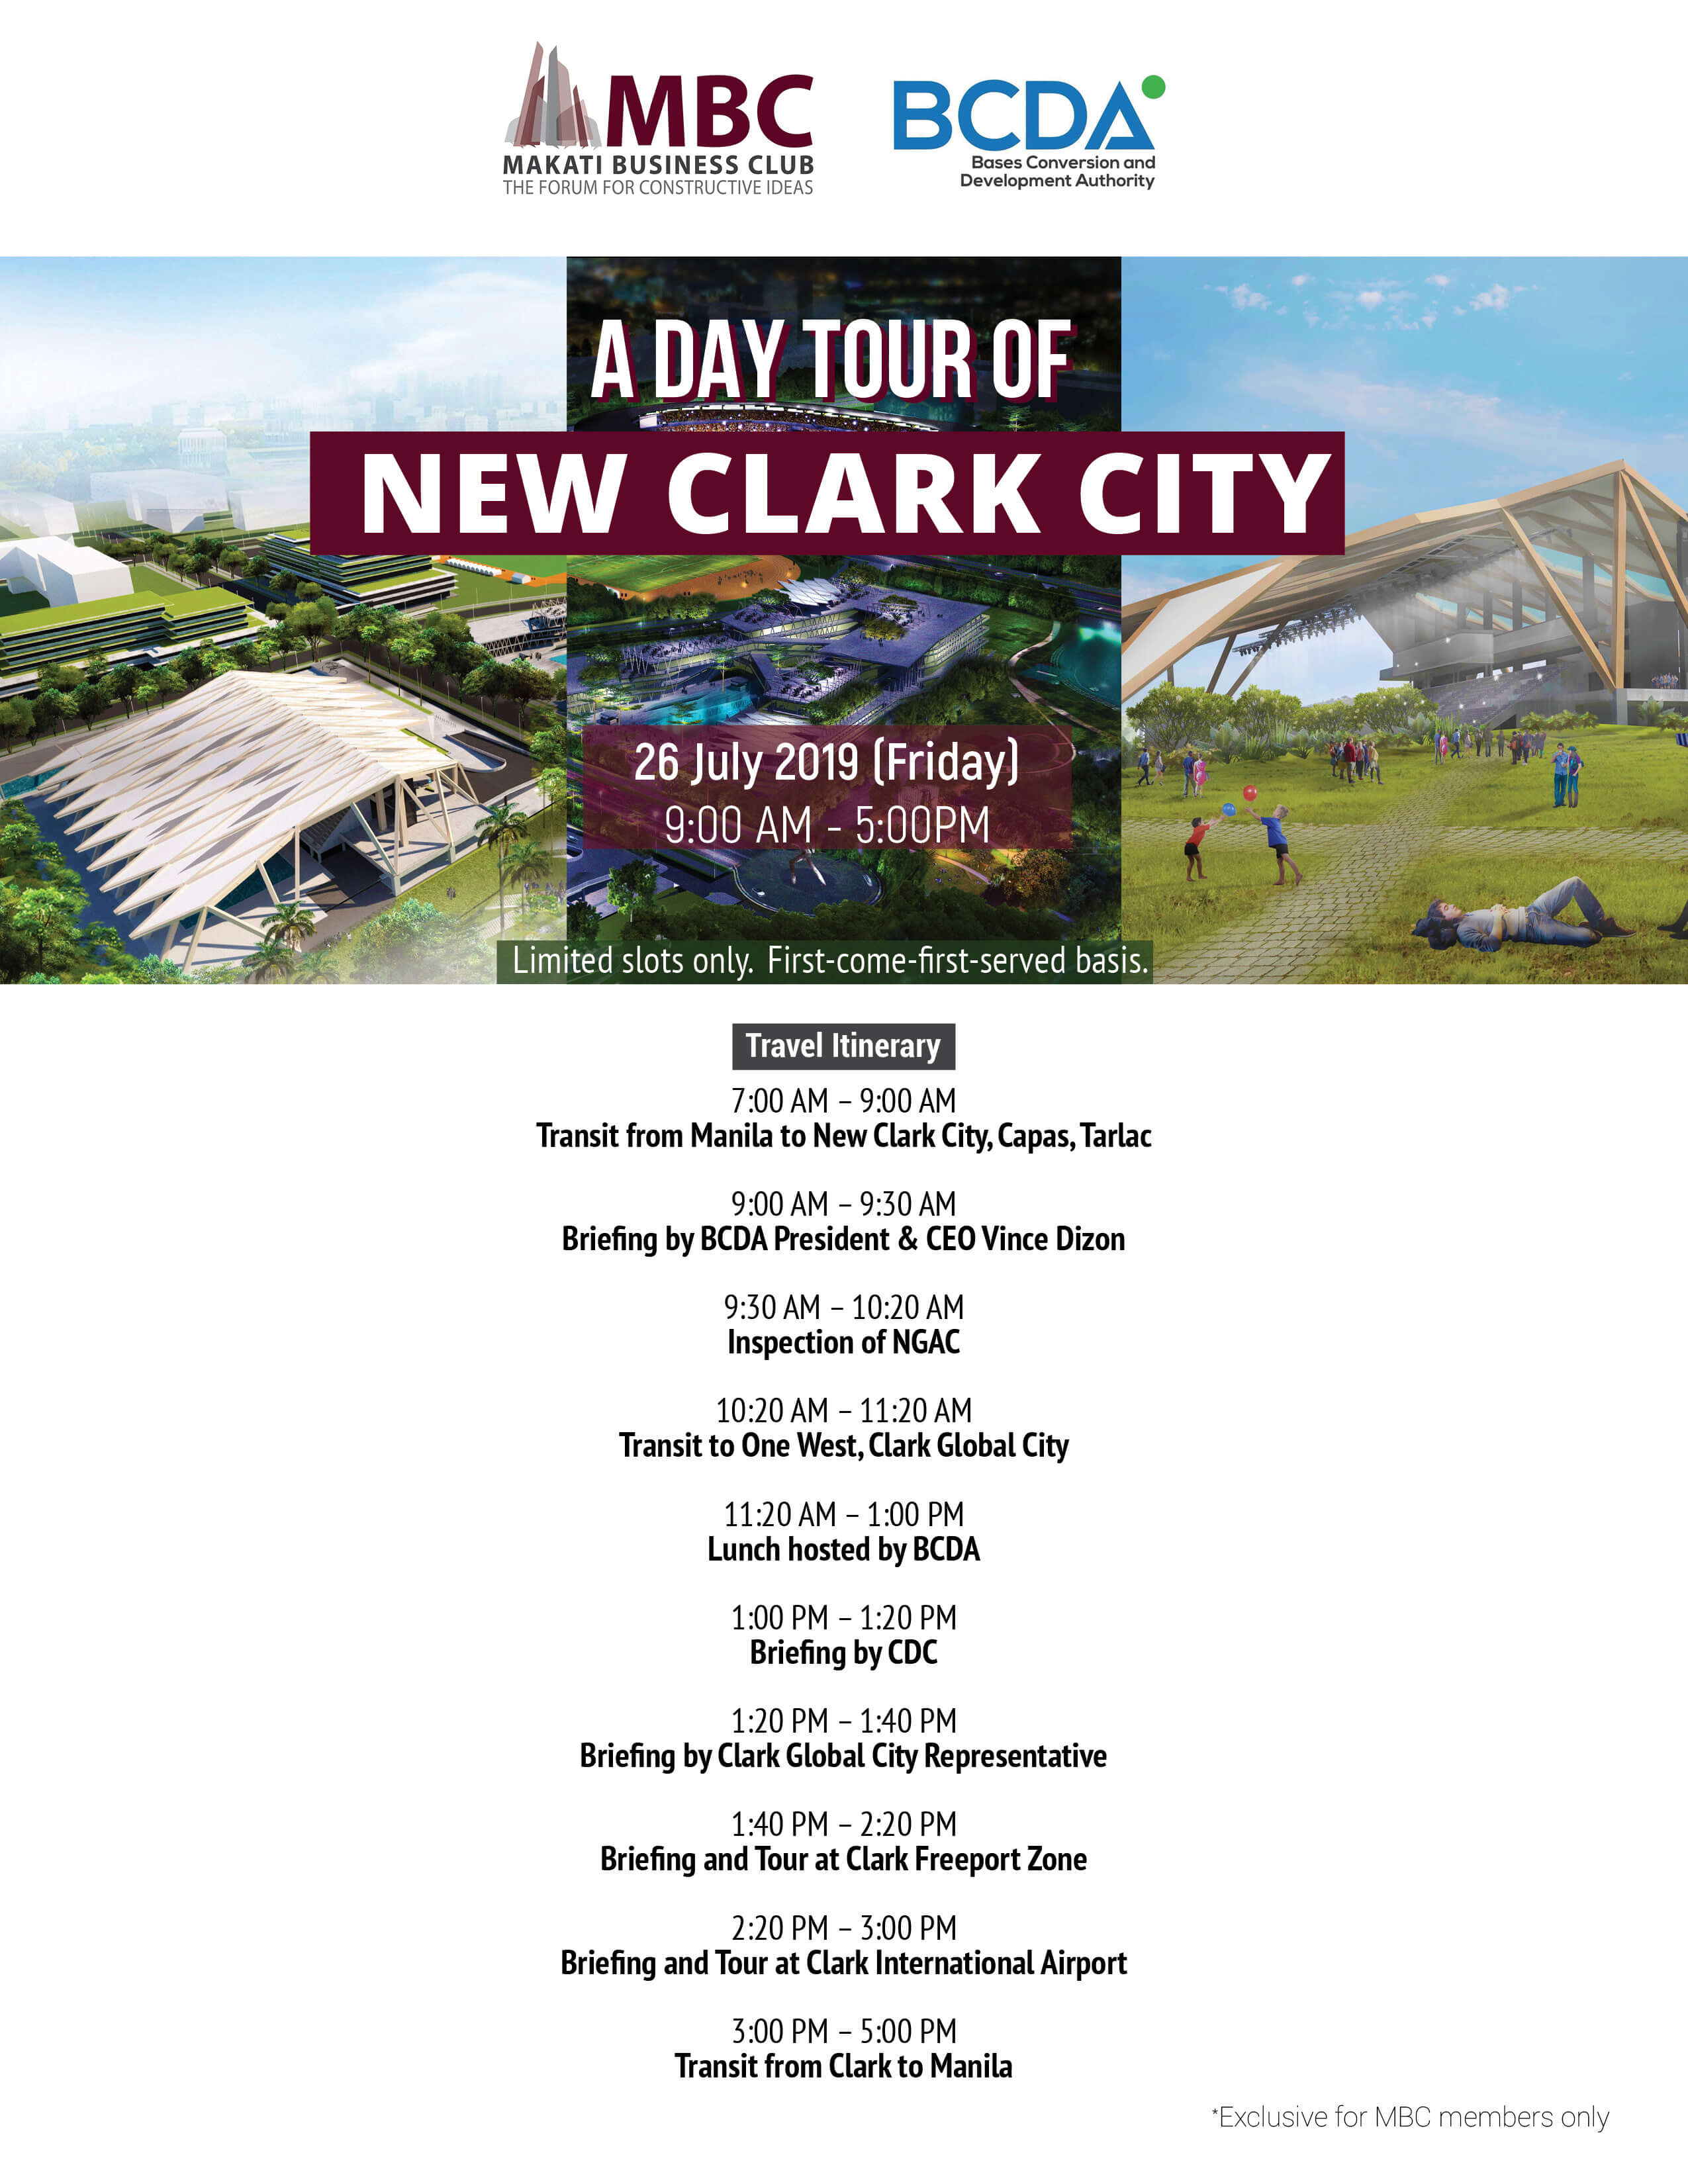 A Day Tour of New Clark City